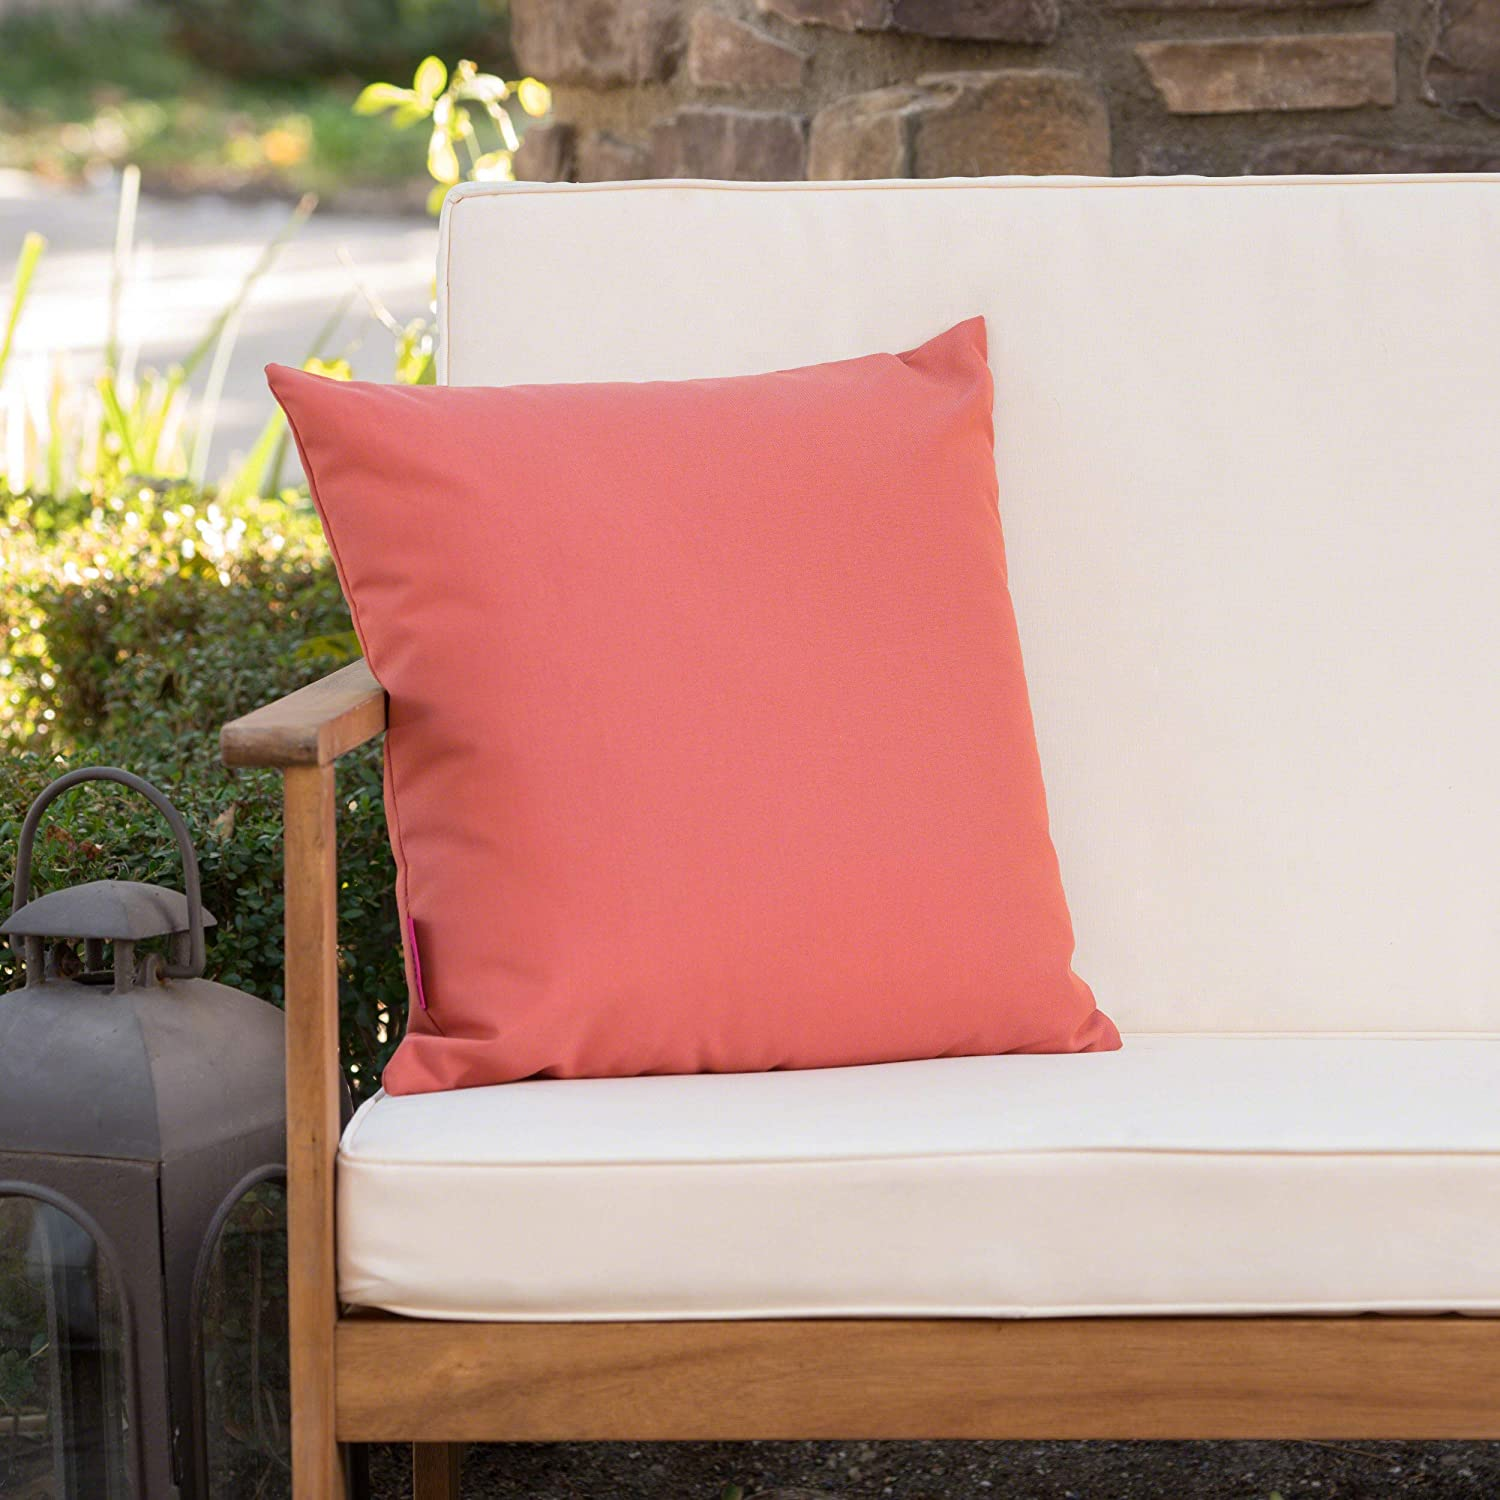 Christopher Coral Pillow, Throw Square Resistant Water Outdoor ...